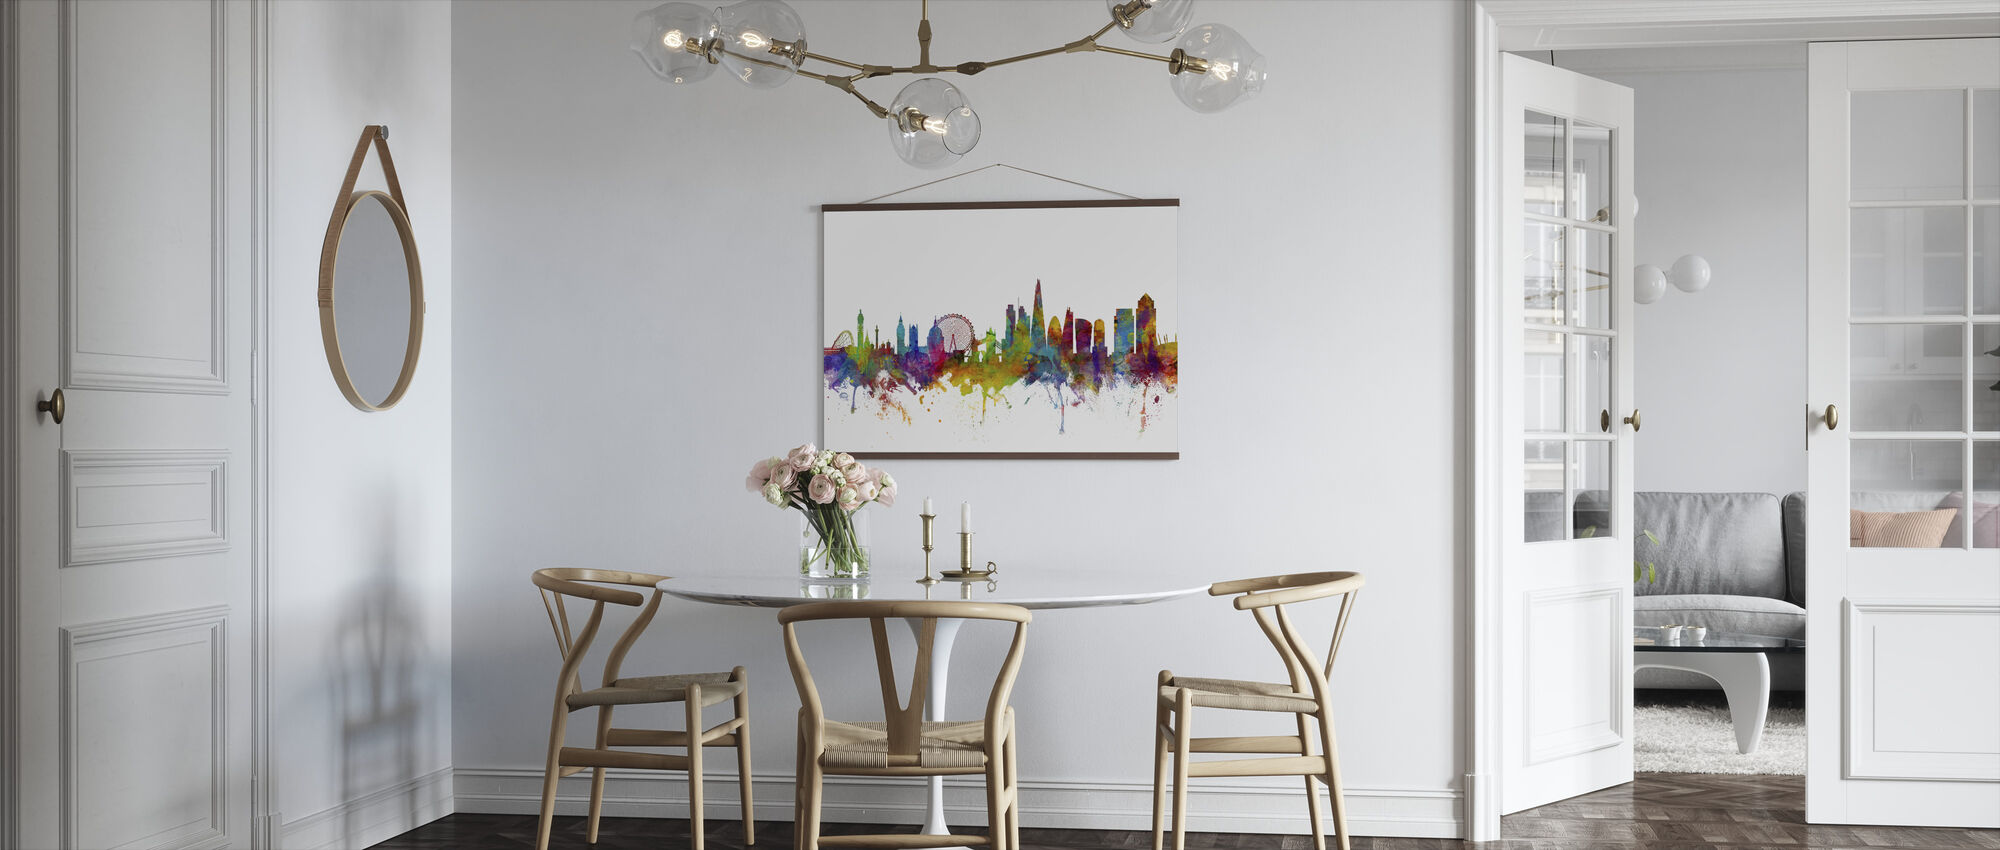 London Canary Wharf skyline - Poster - Kitchen